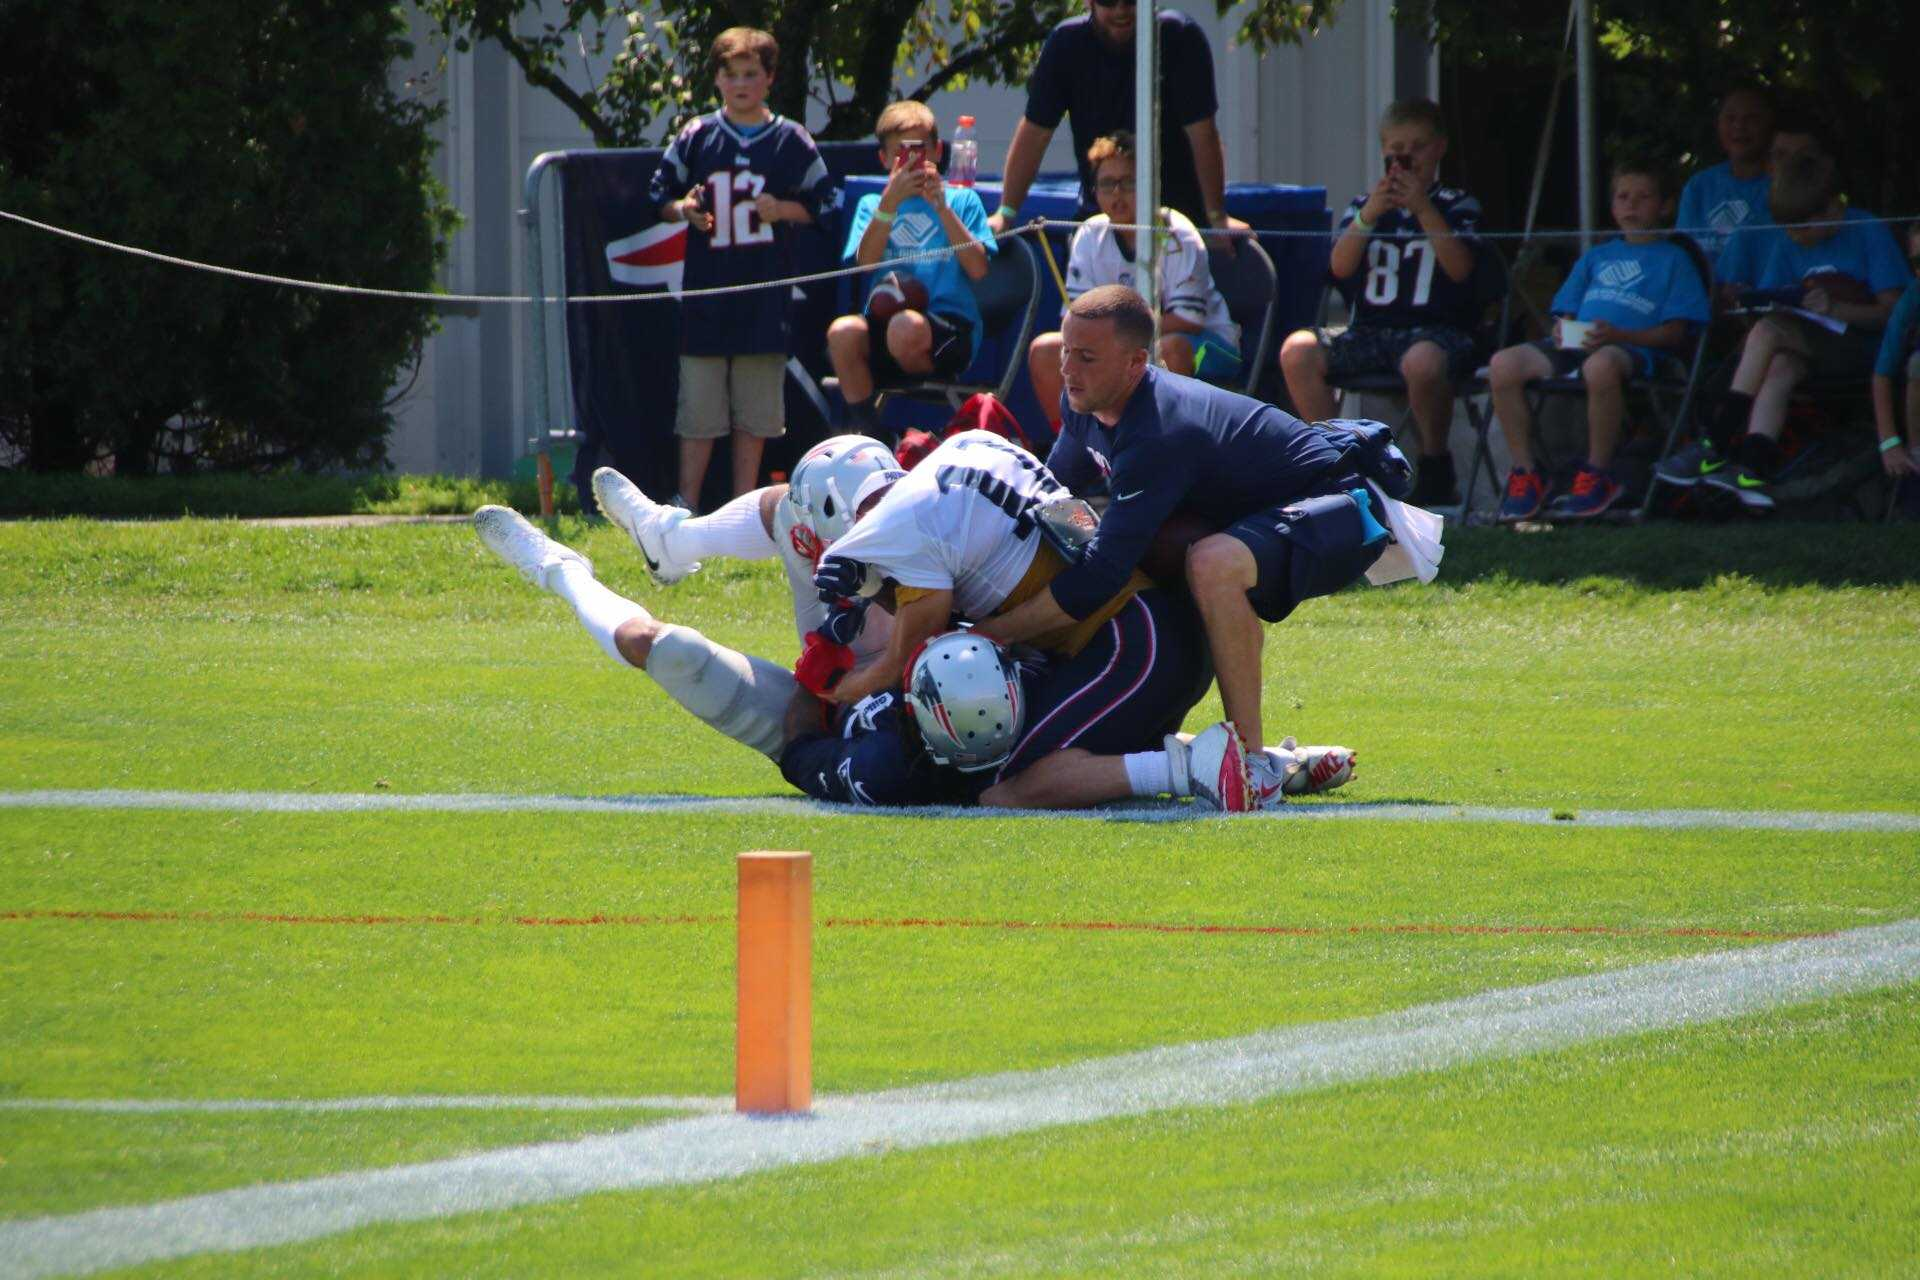 Edelman, Gilmore ejected from practice after fight